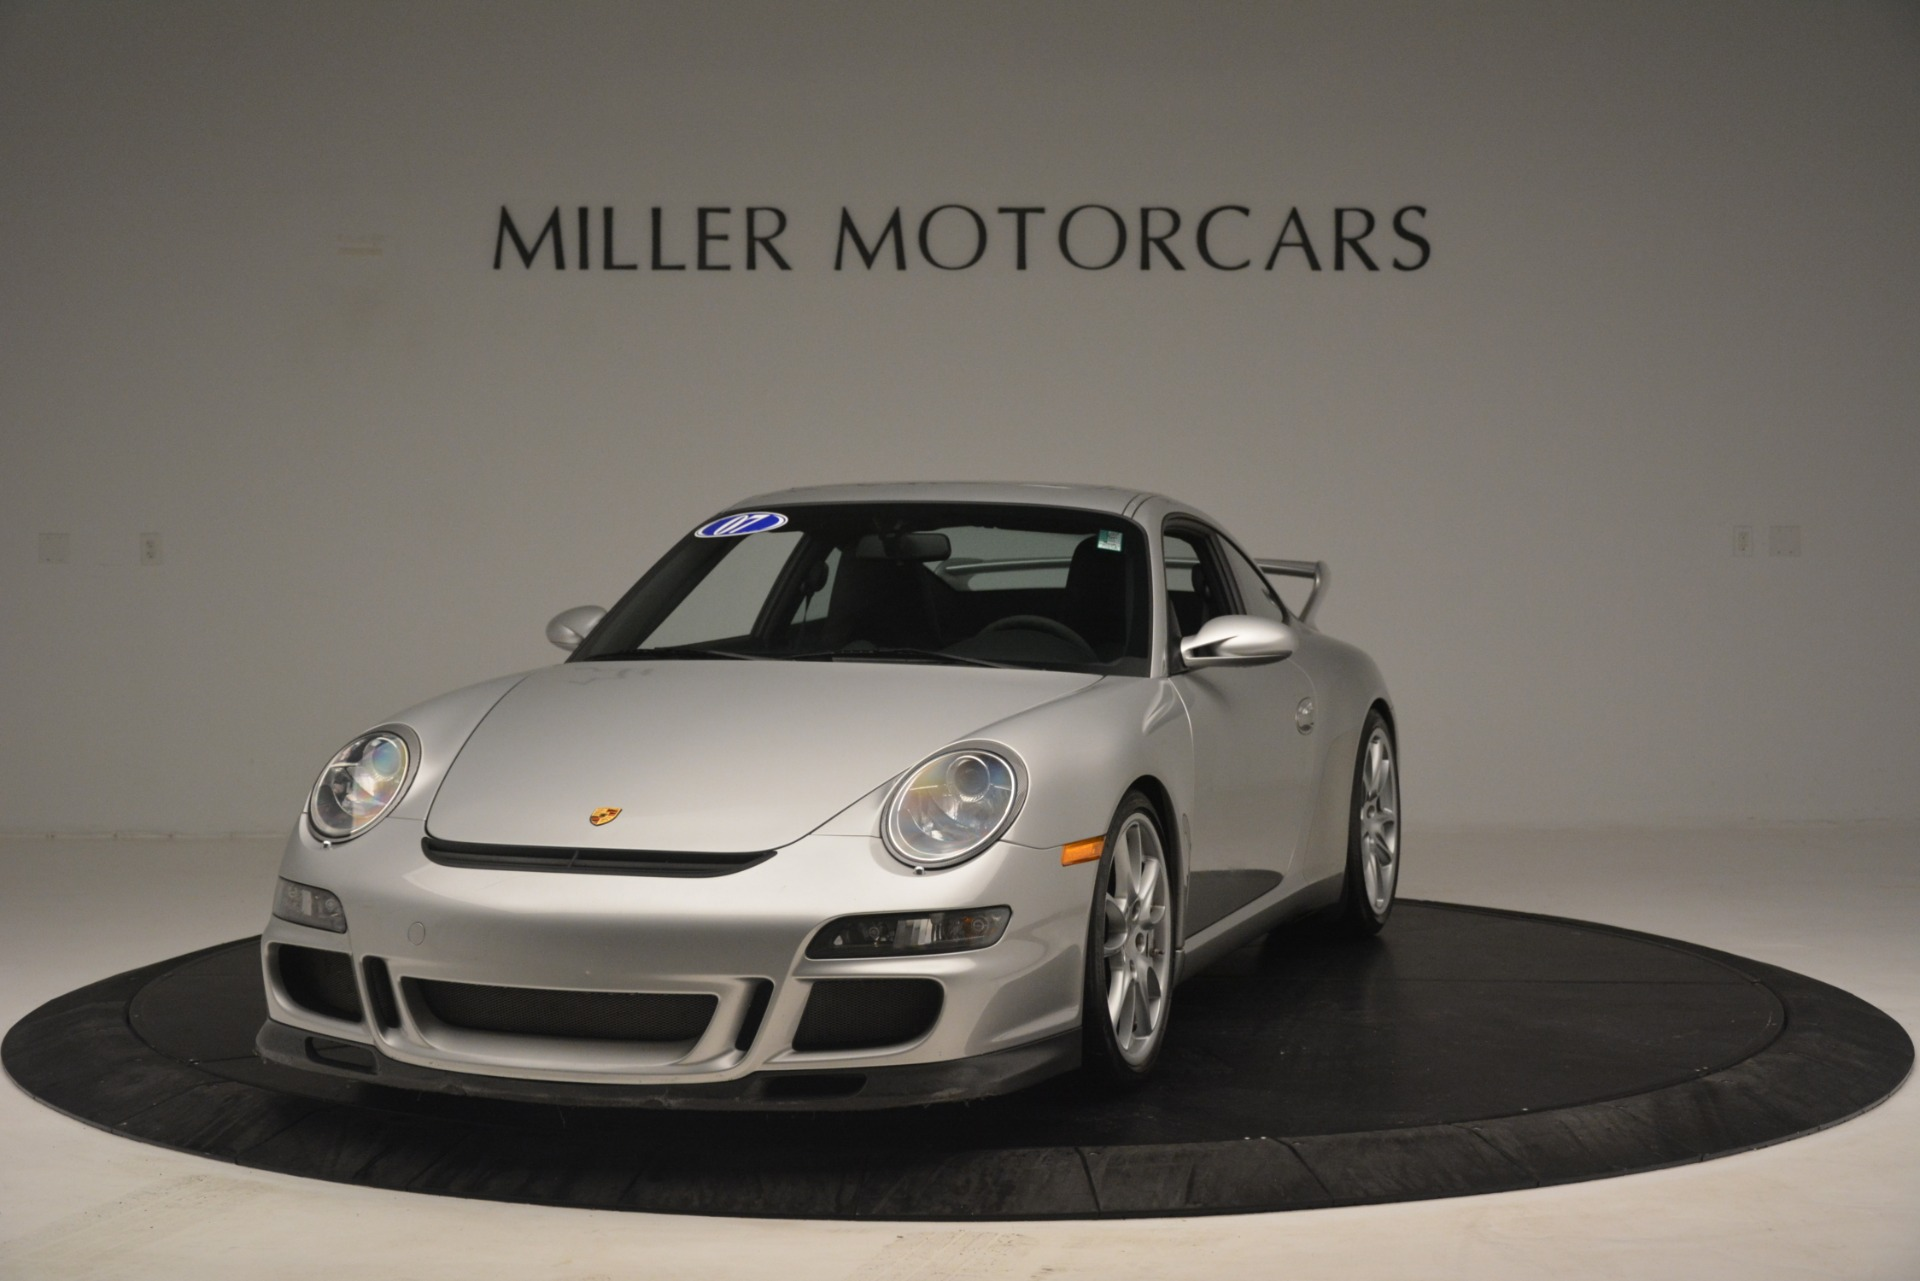 Used 2007 Porsche 911 GT3 for sale Sold at Bugatti of Greenwich in Greenwich CT 06830 1